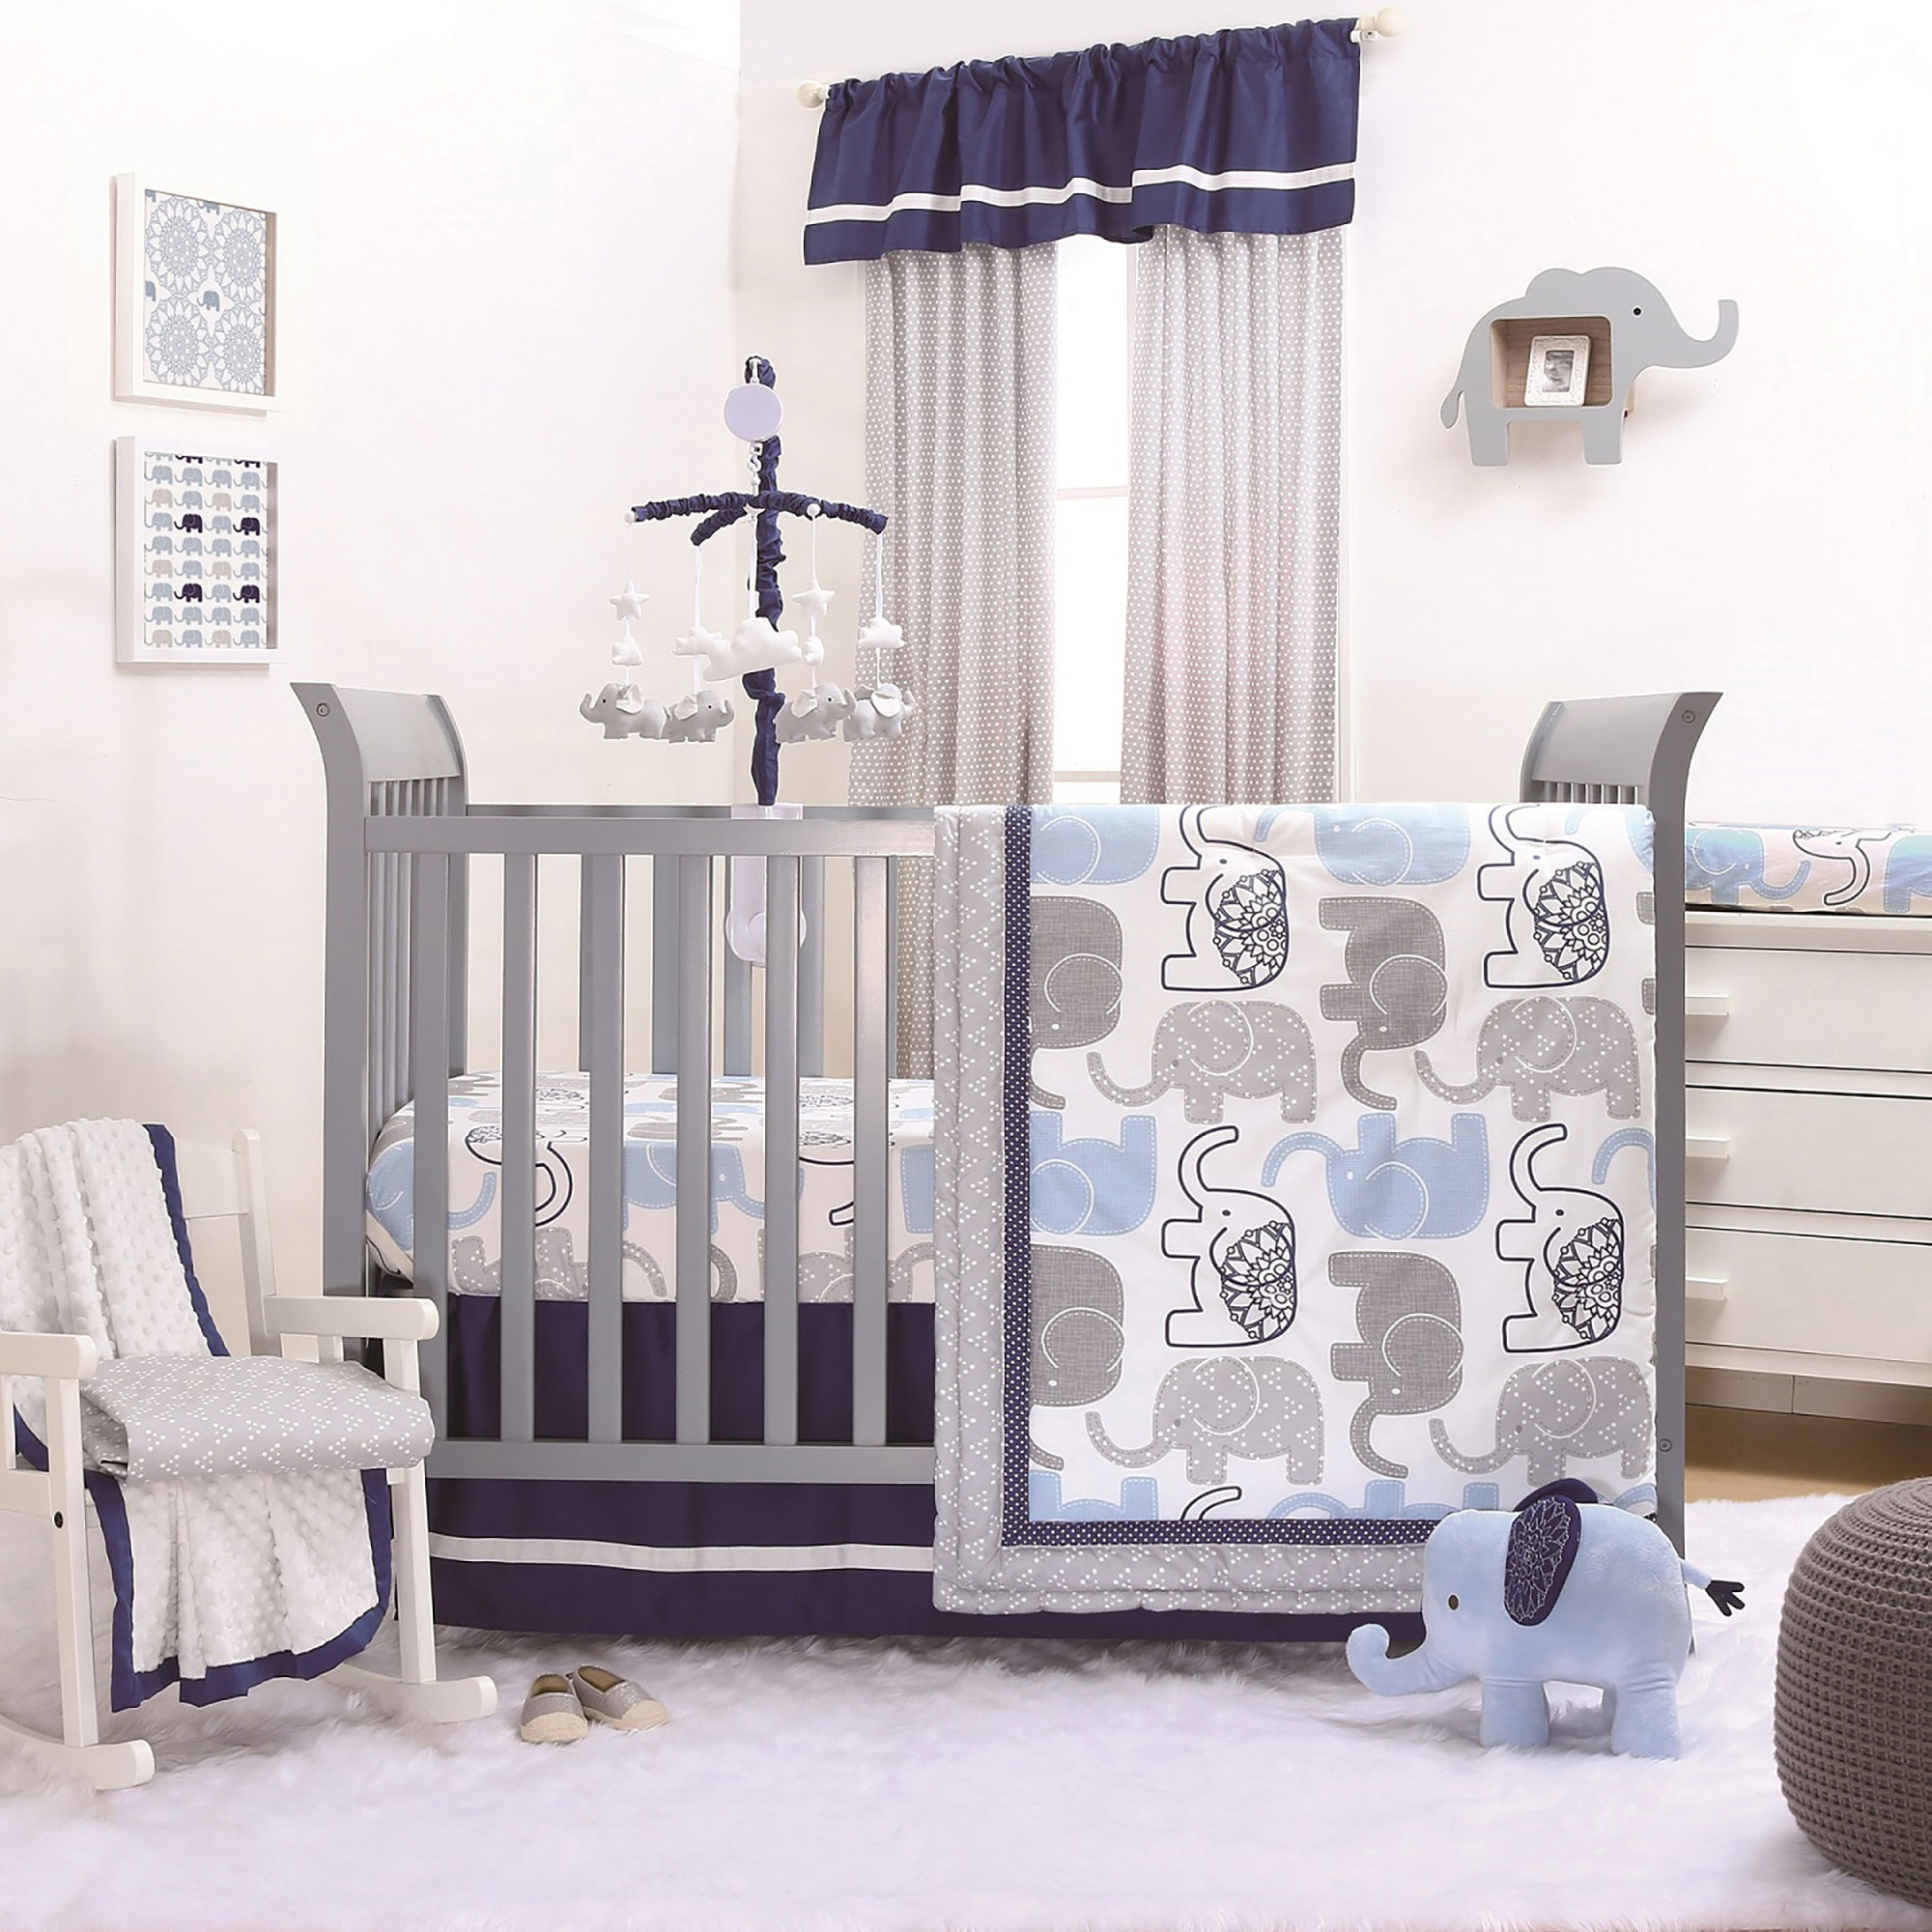 prodigious Elephant Baby Boy Crib Bedding Part - 11: Little Peanut Blue Grey Elephant Baby Boy Crib Bedding - 20 Piece Sleep Set